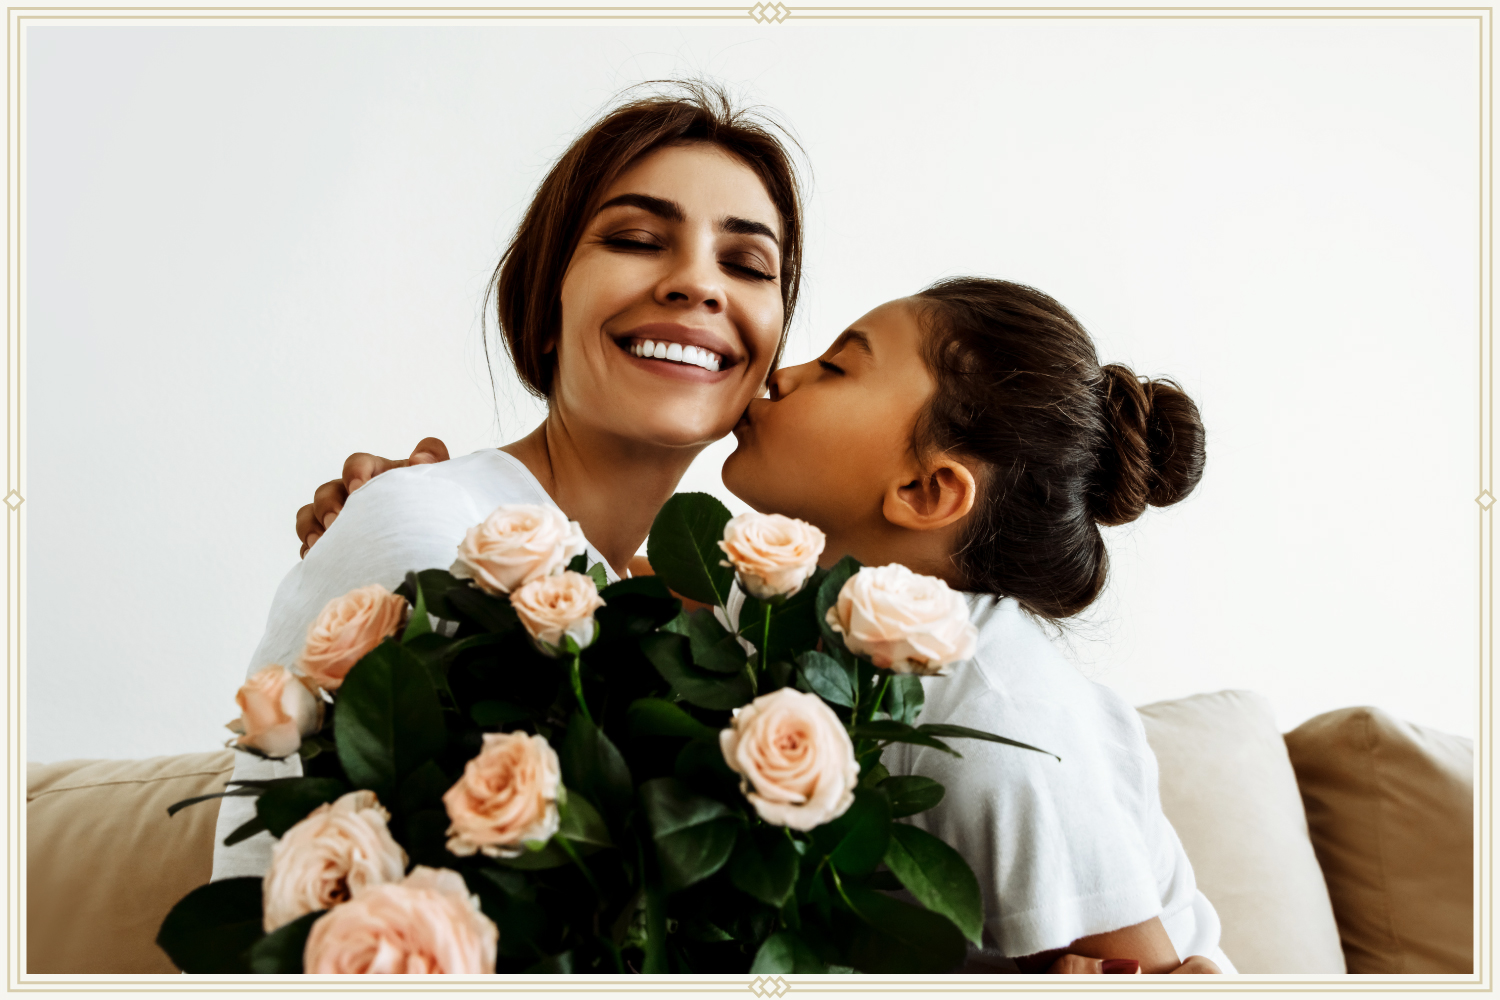 daughter giving mother a kiss while holding bouquet of roses